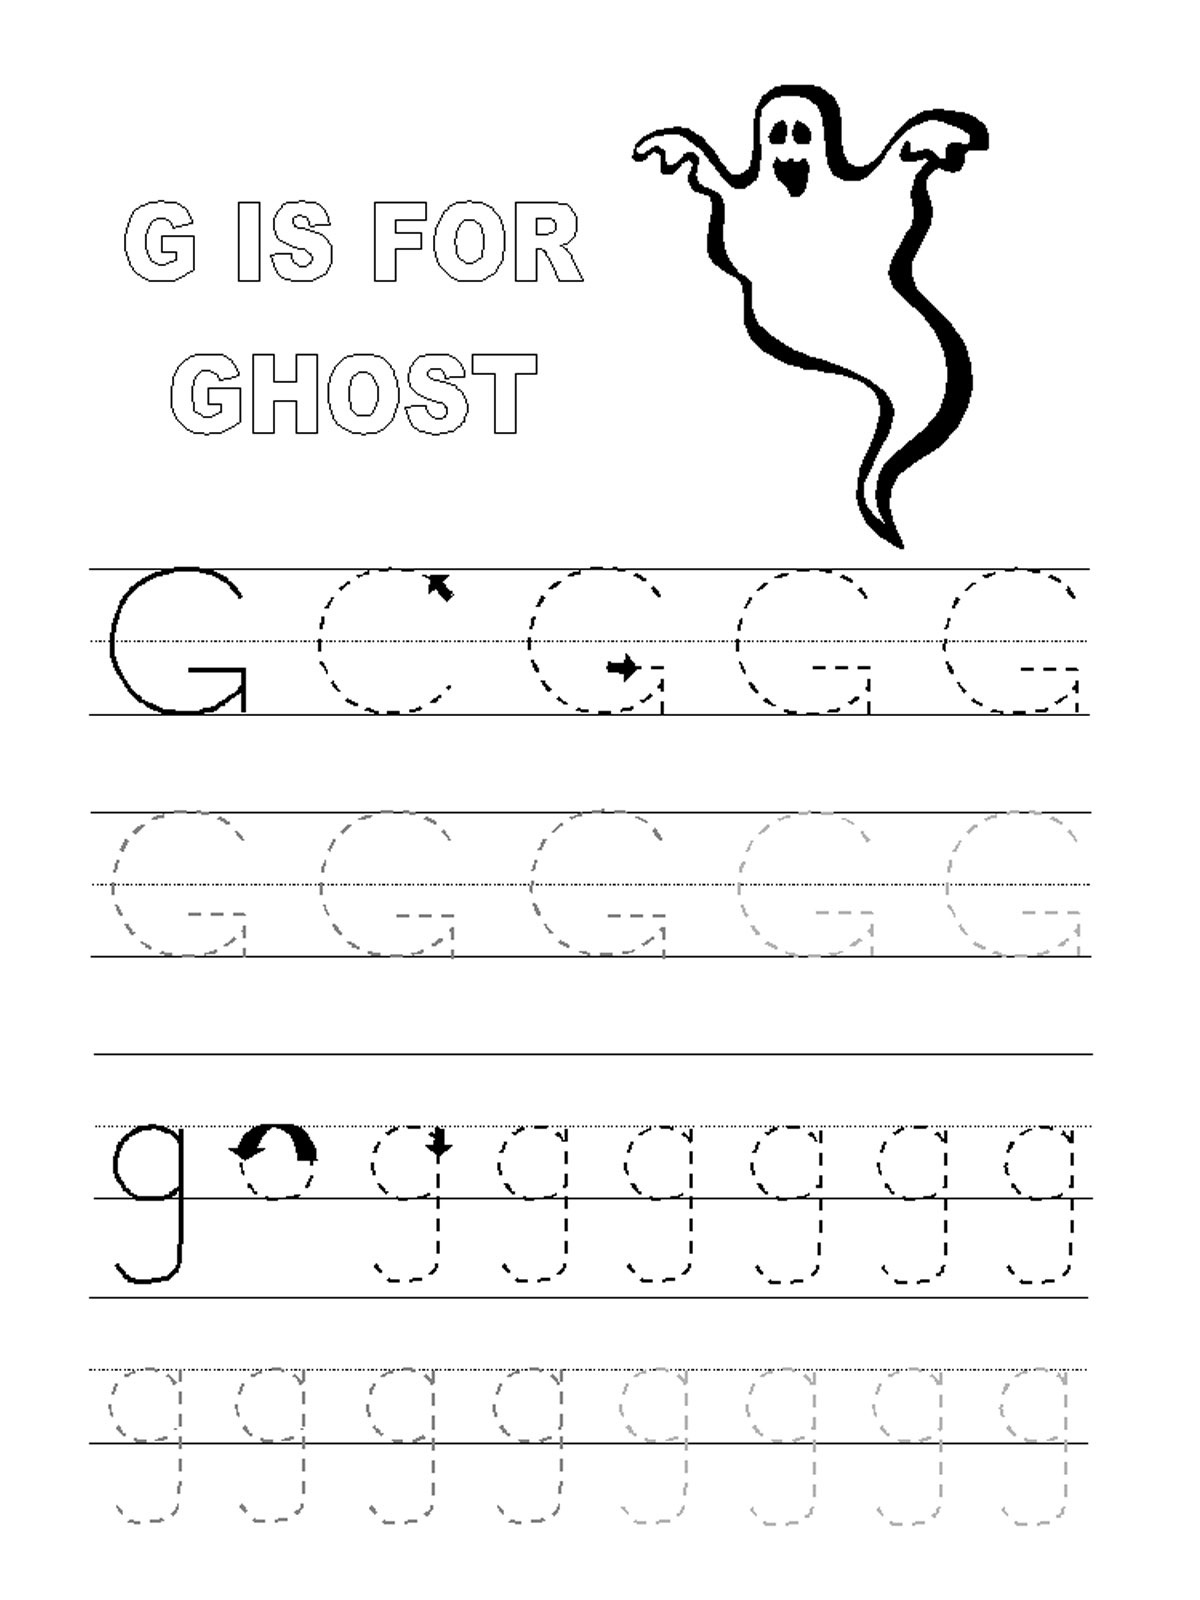 trace-letter-g-practice